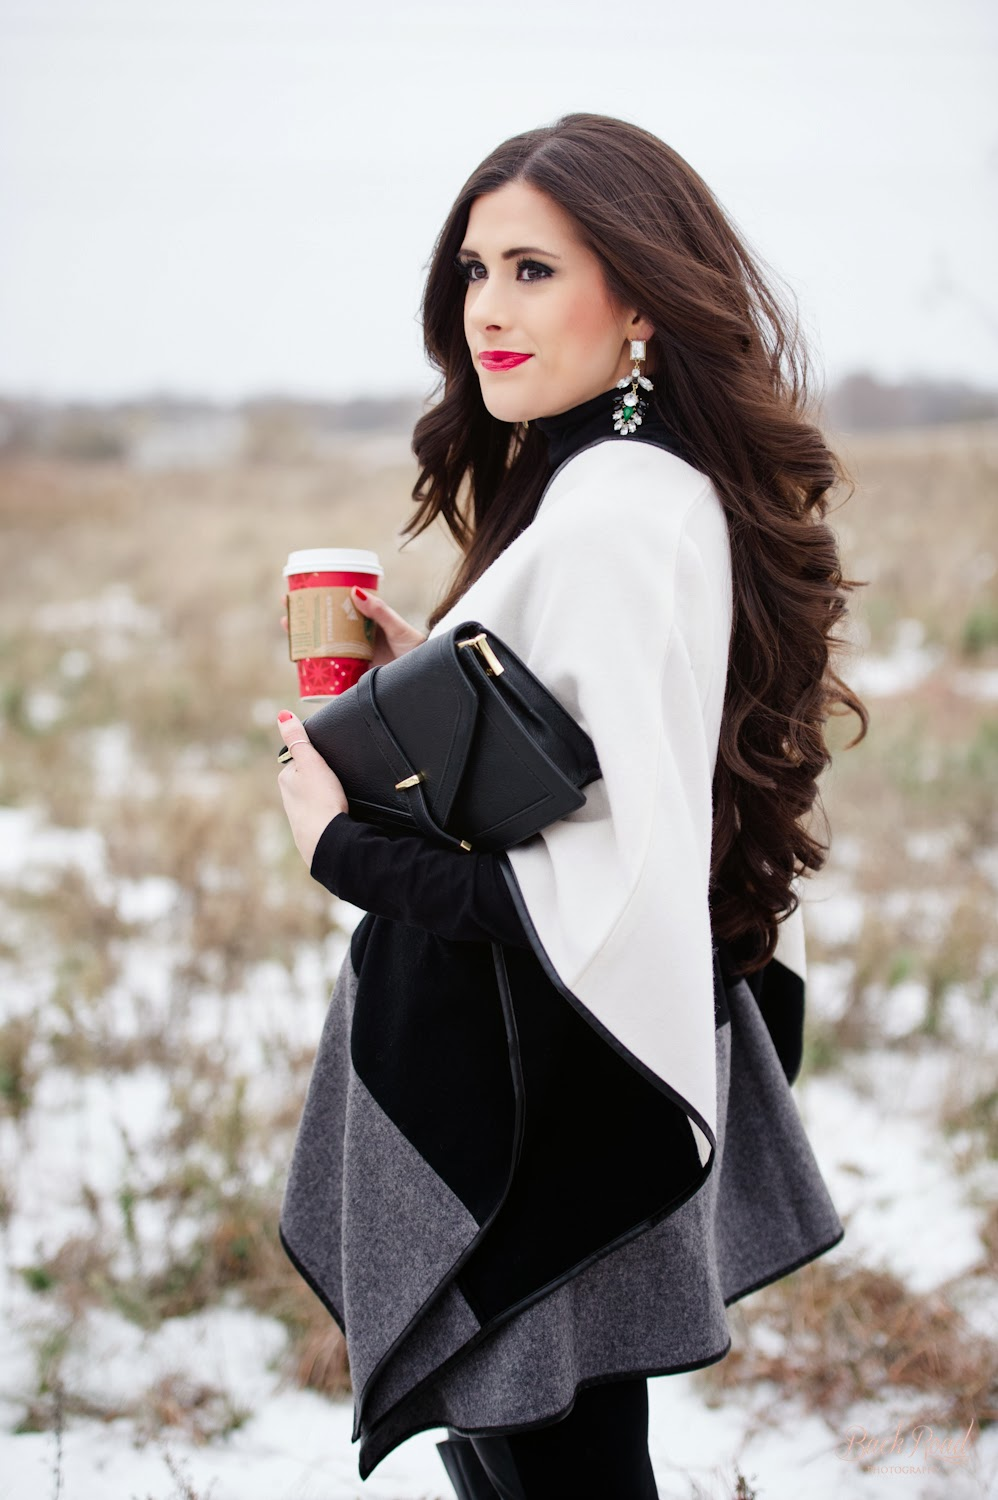 the sweetest thing blog, www.thesweetestthingblog, emily gemma, dallas wedding photographers, dallas photographers, fashion blog, backroad photography, ann taylor, cape, over the knee boots, sole society, forever 21, michael kors runway watch, jcrew bracelet, jcrew, starbucks